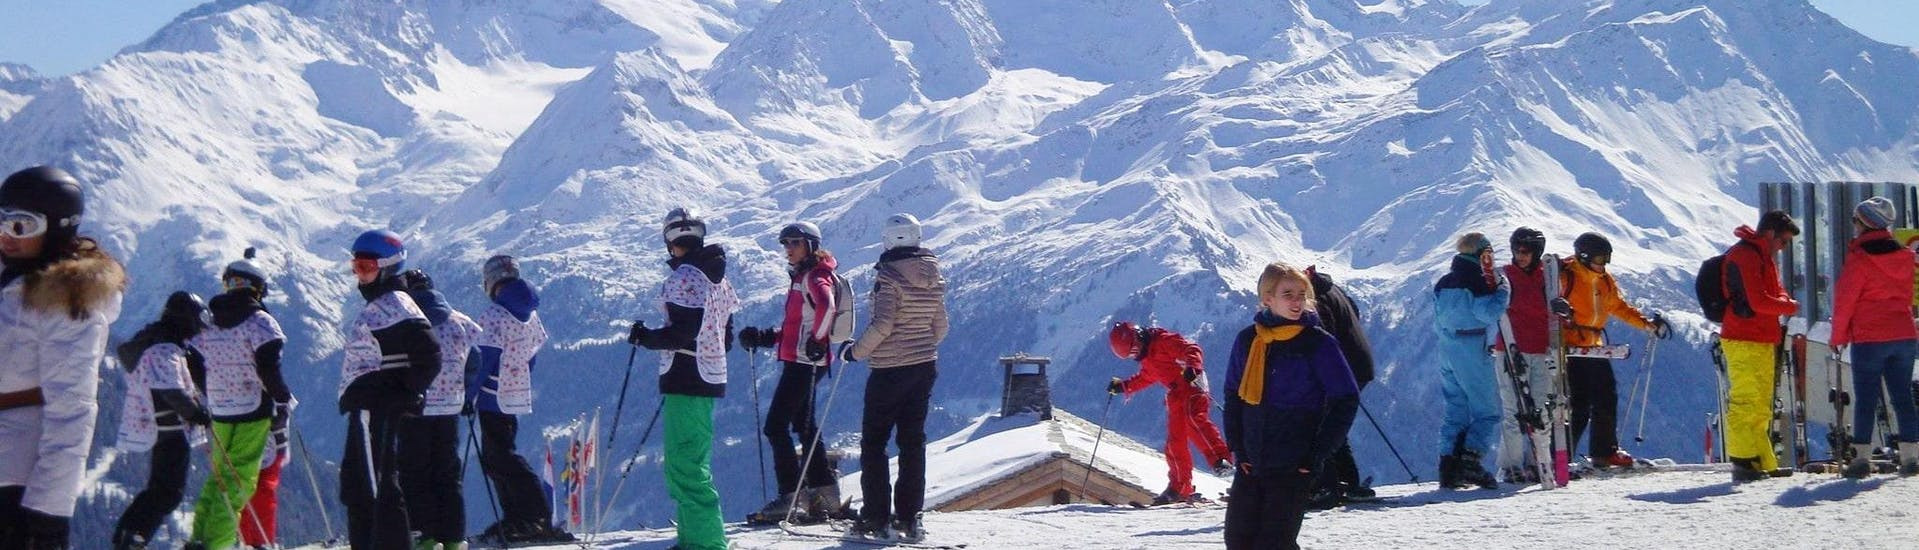 View of the top of the gondola station where start the Kids Ski Lessons (4-12 years) - Morning - With Experience with the Swiss Ski School La Tzoumaz.